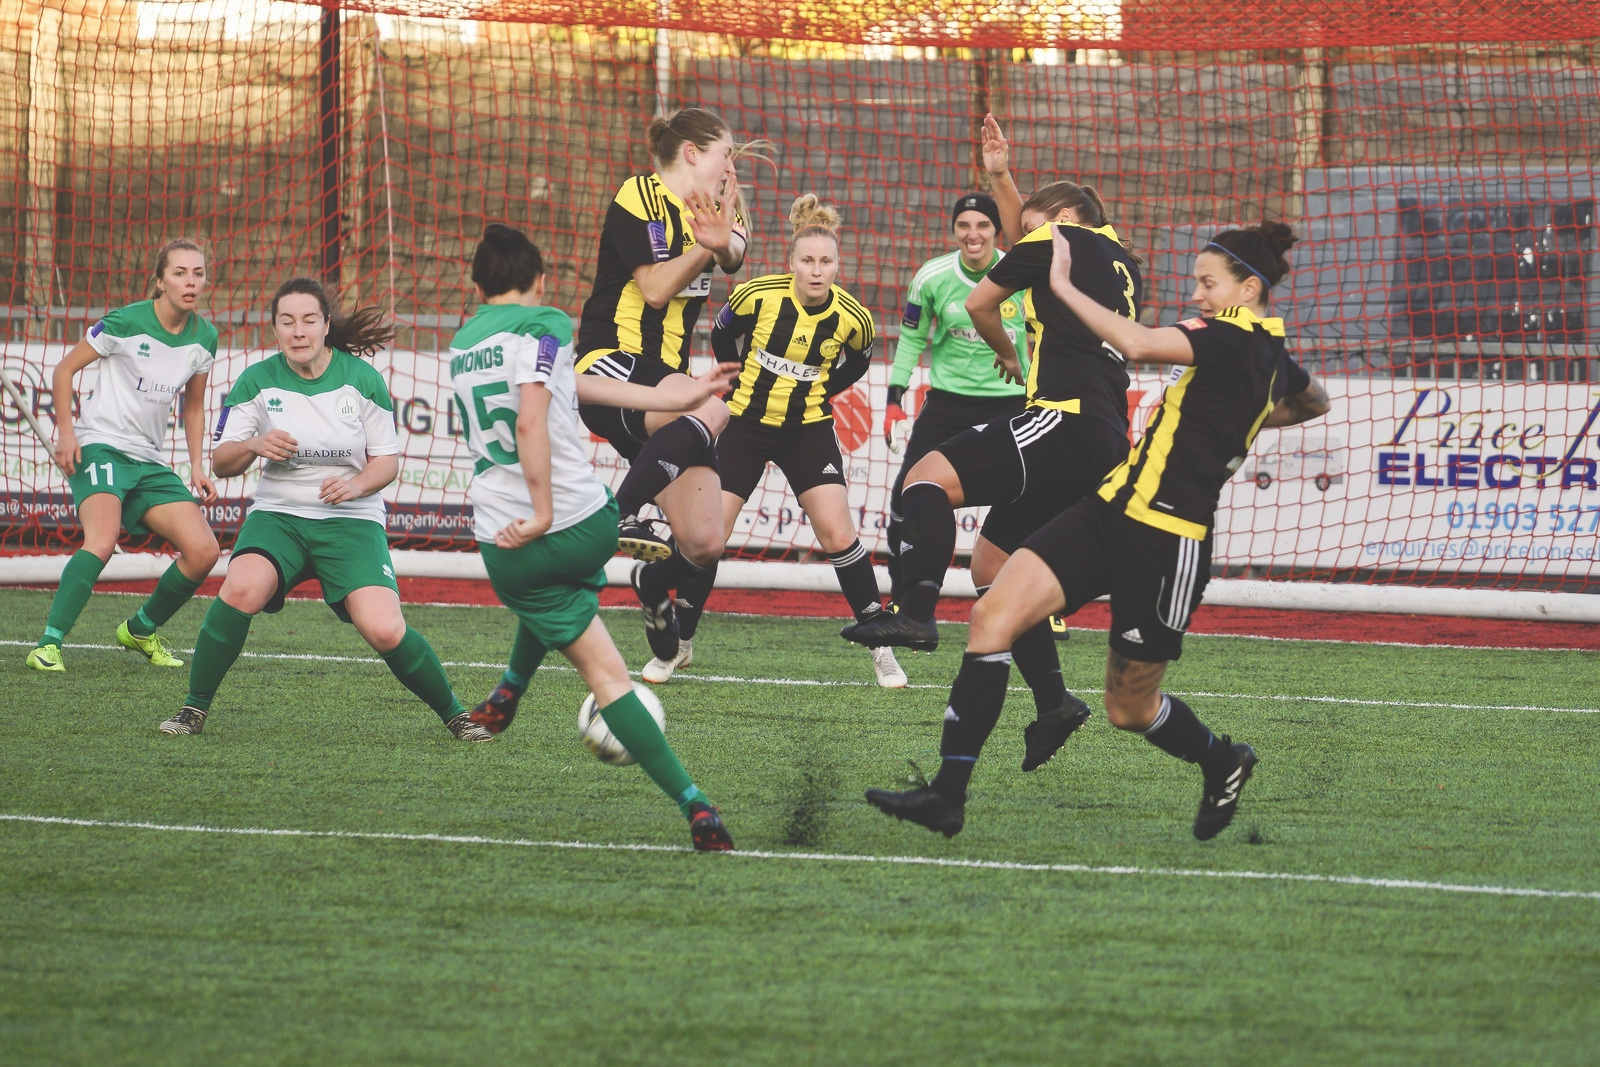 Crawley Wasps LFC (2) vs Chichester City LFC (0) on December 09, 2018 at Worthing FC, Woodside Road, Worthing, Worthing. Photo: Ben Davidson,